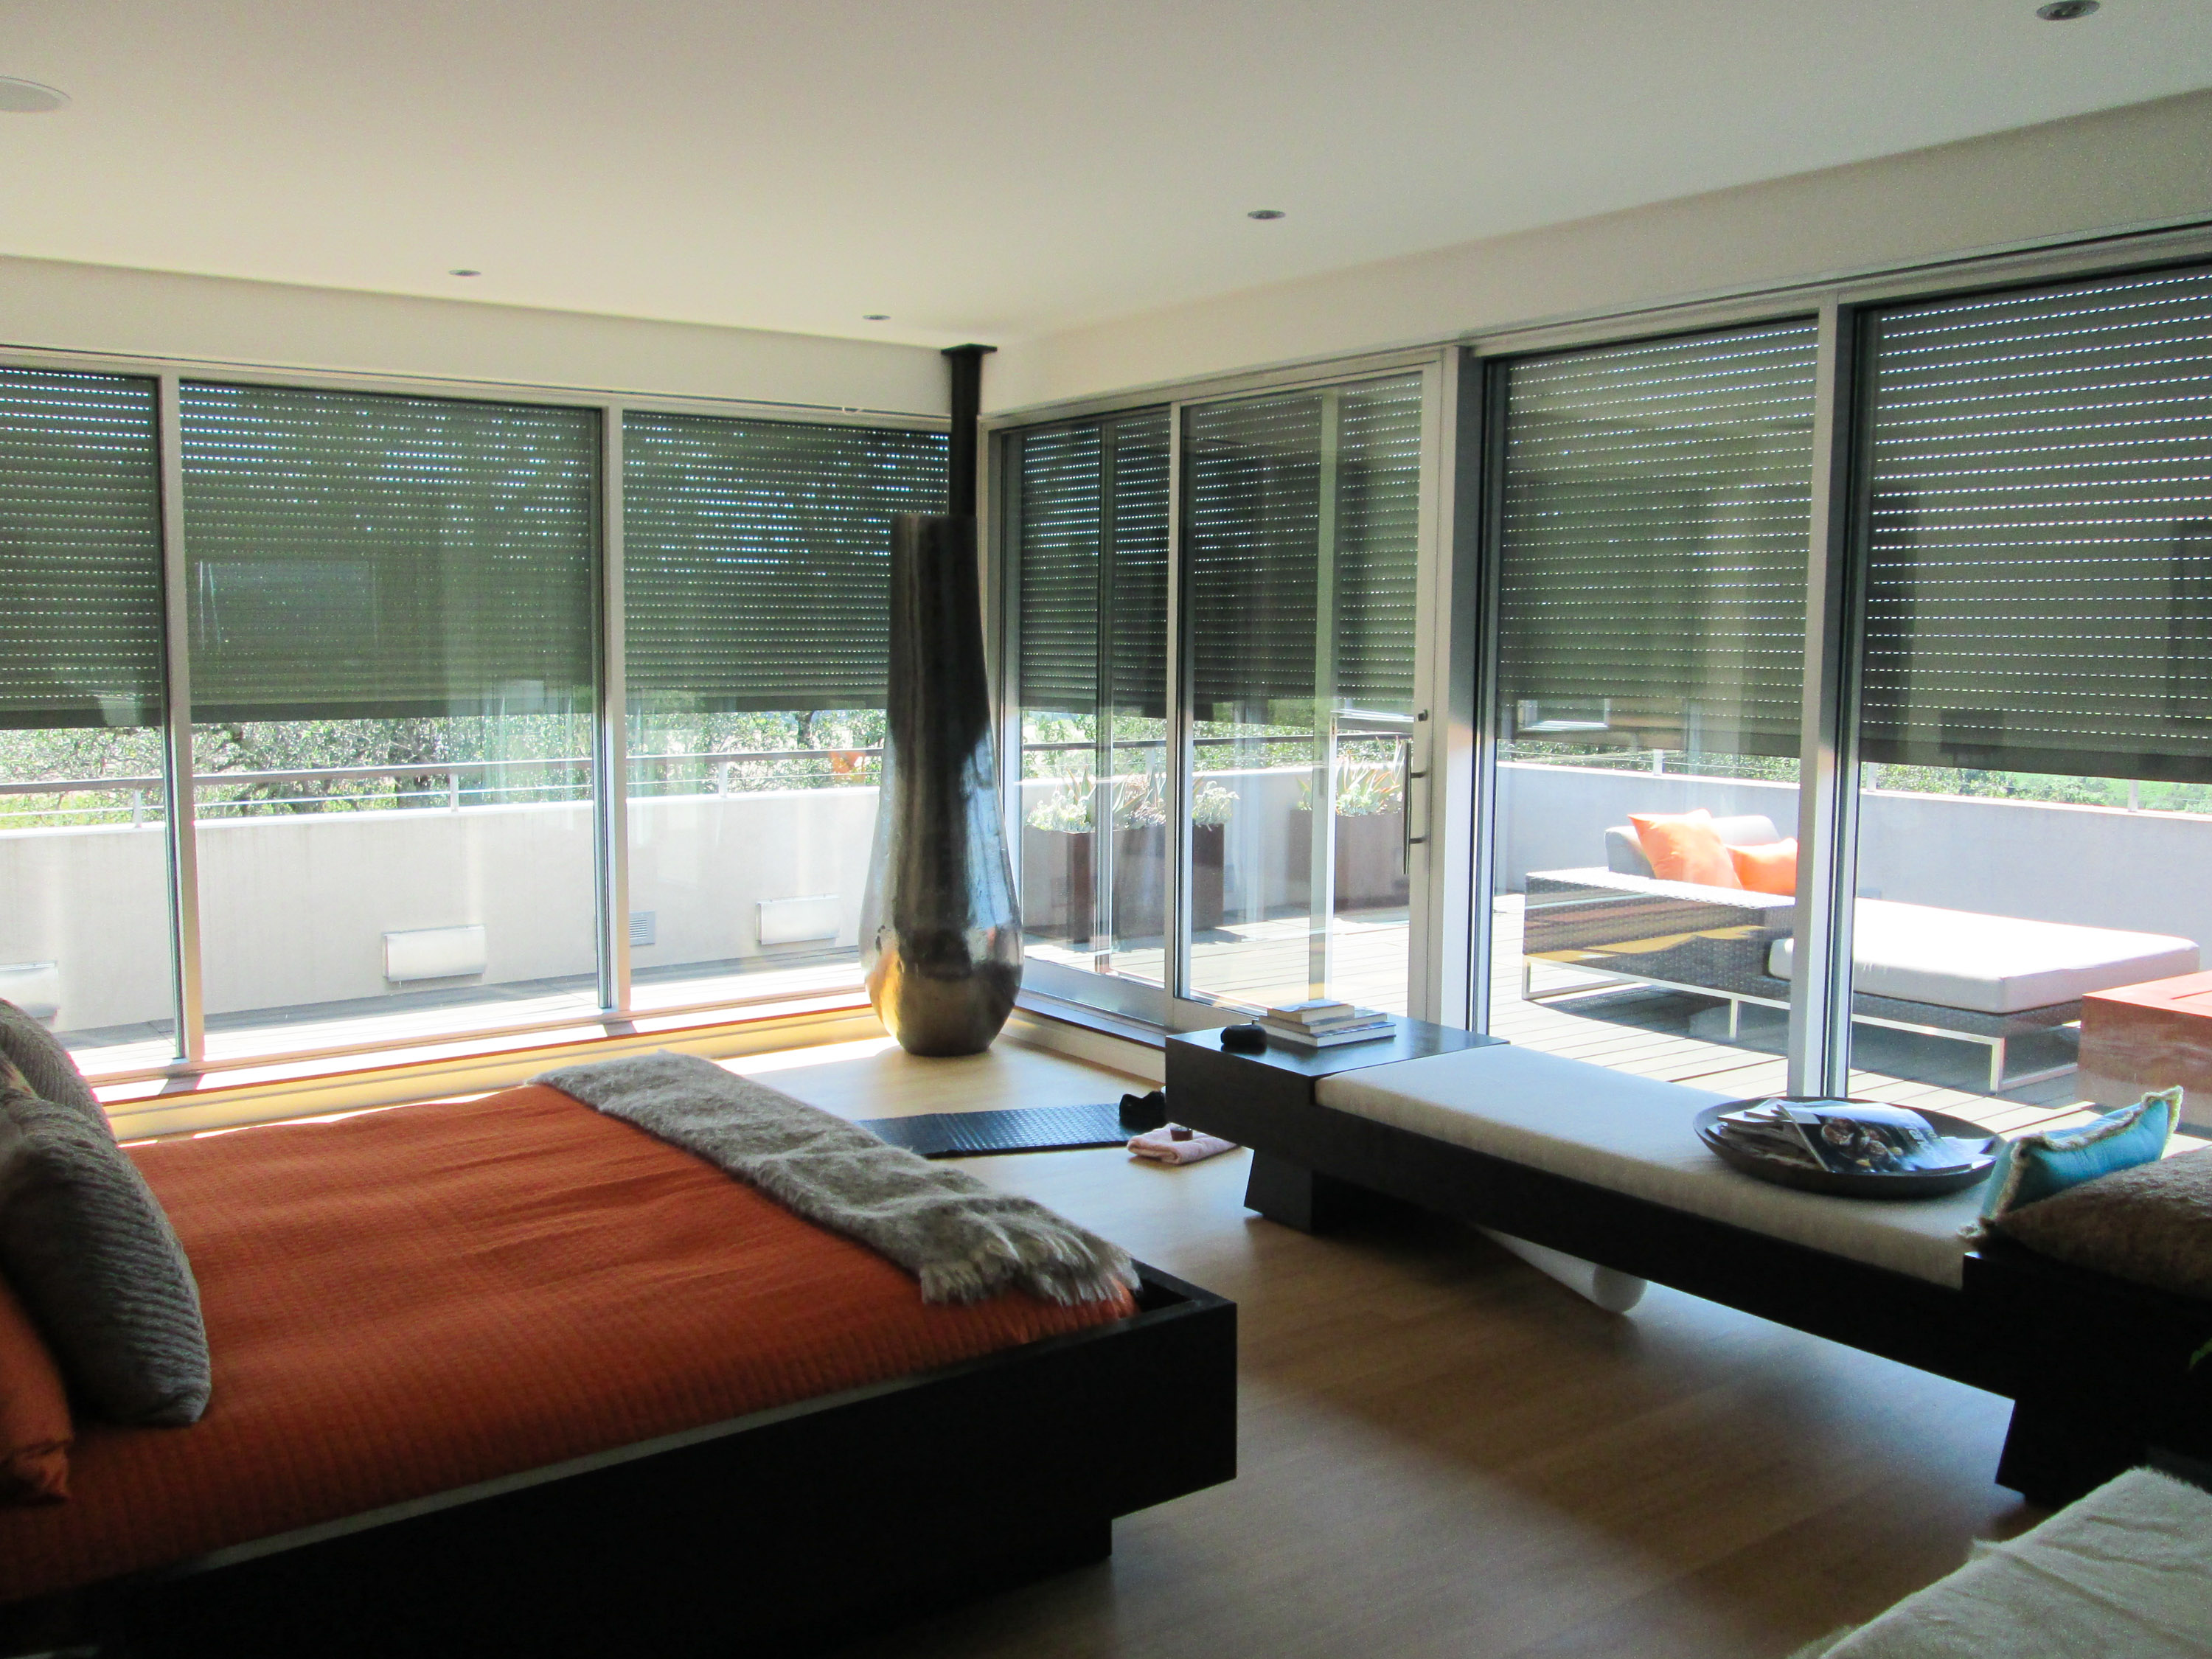 modern motorized treatment design smart and fooz window option world treatments shades blinds electric